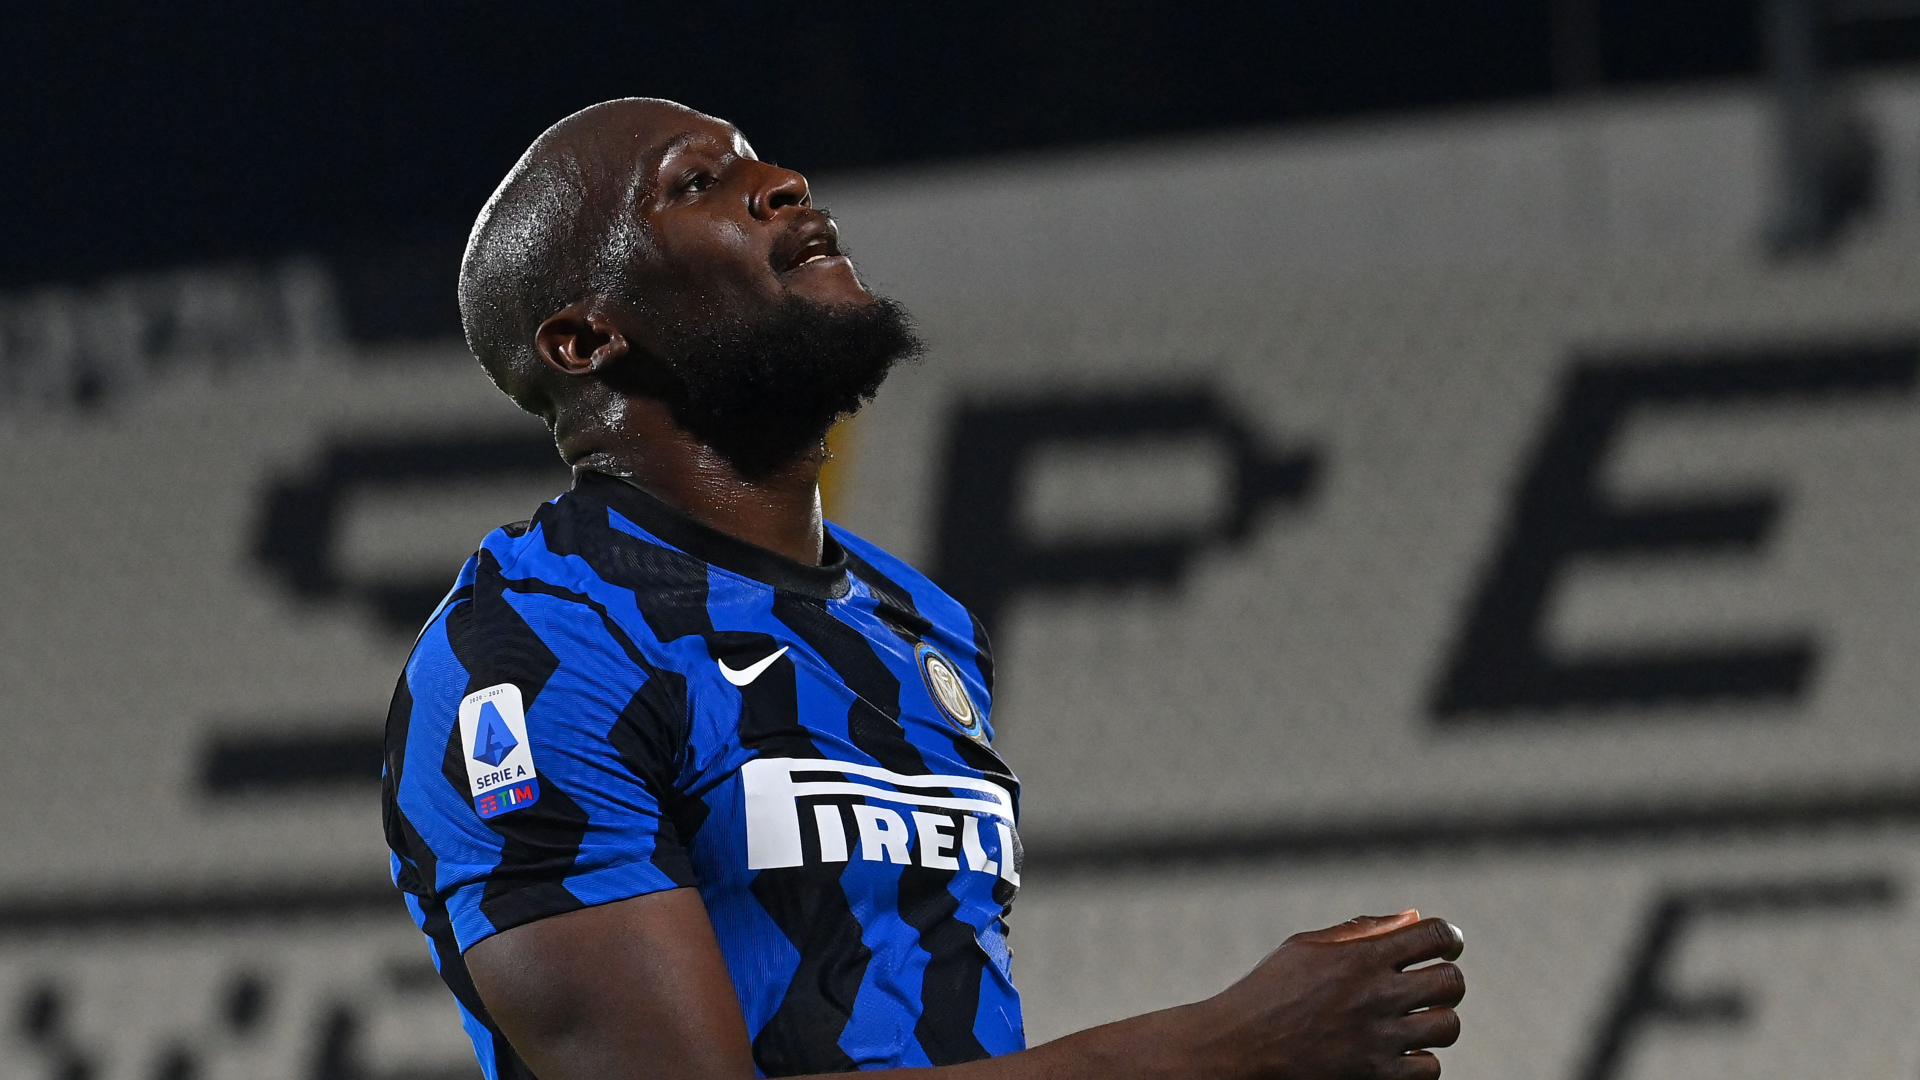 Transfer news and rumours LIVE: Chelsea see £85m Lukaku offer rejected